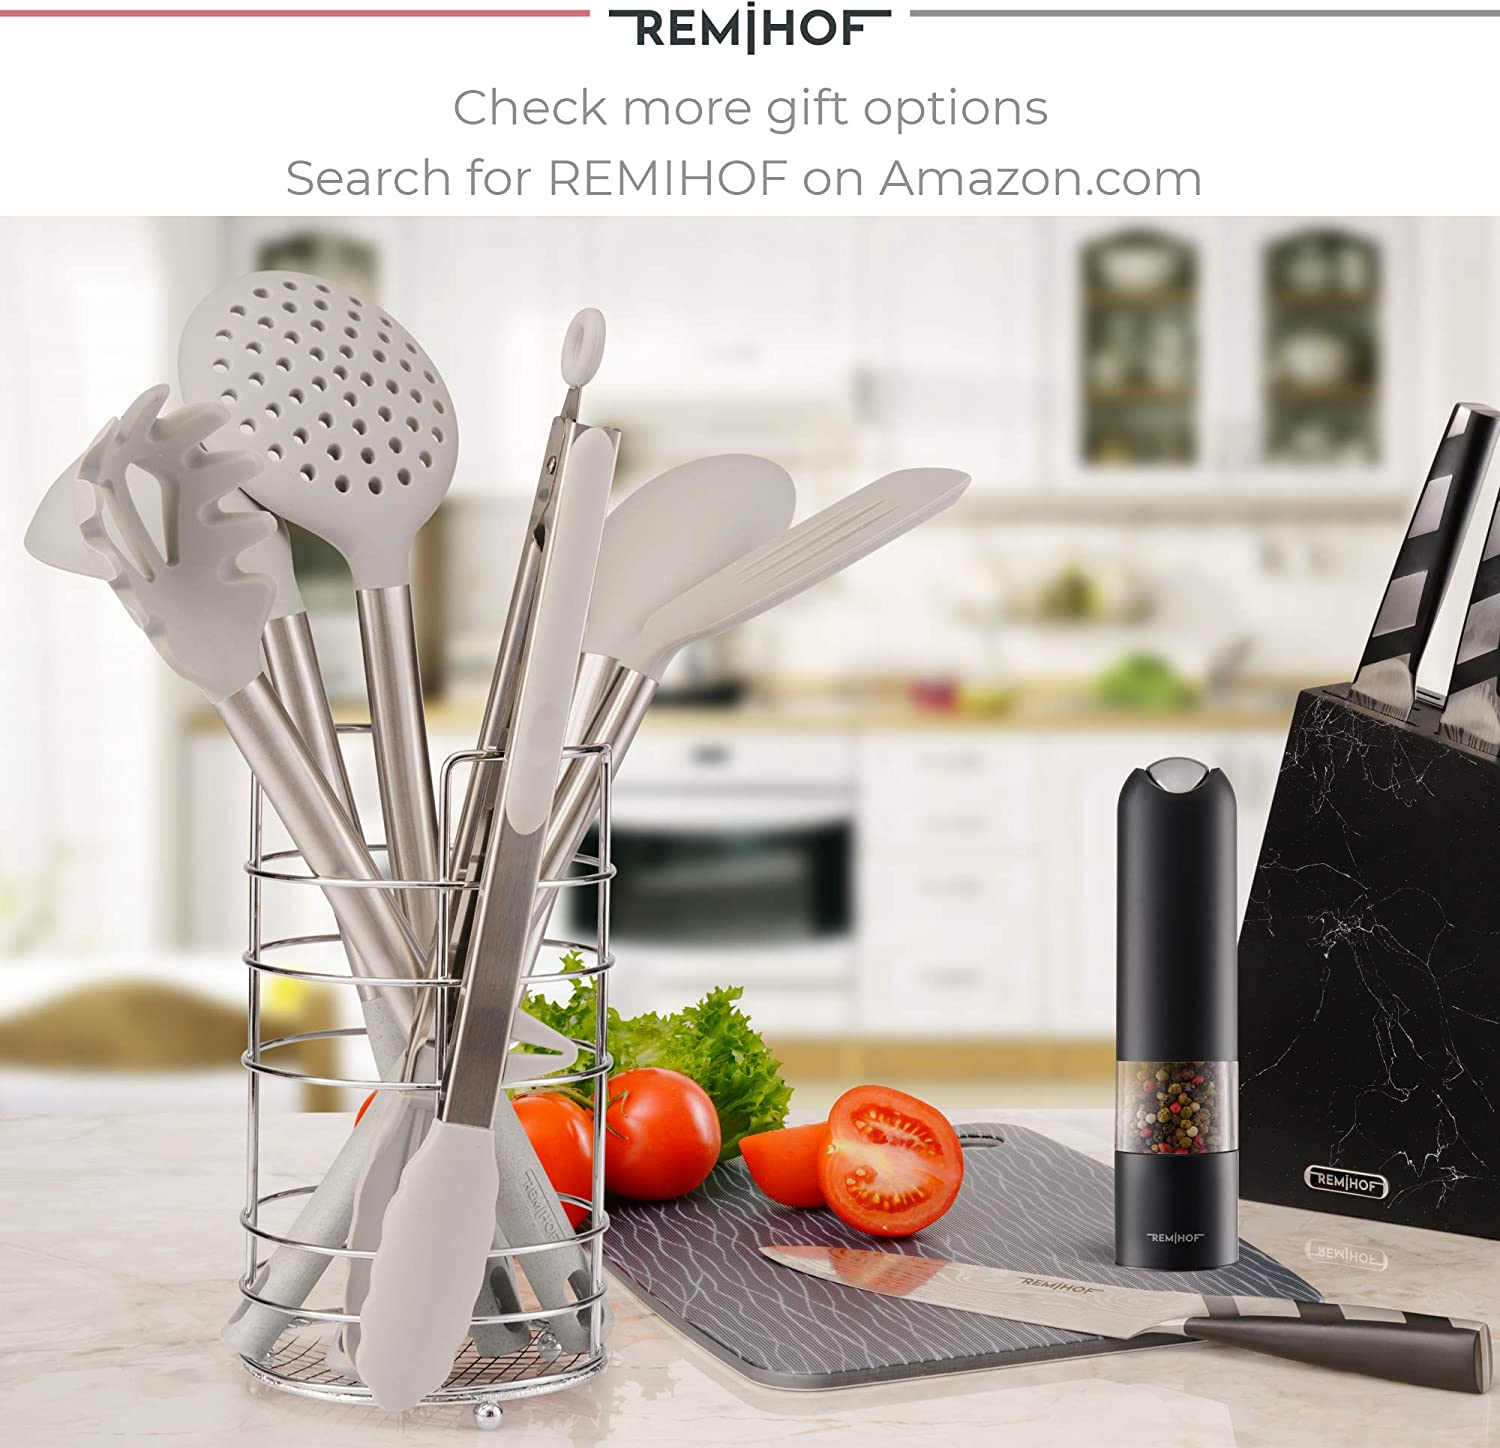 Best Culinary Gift Set Spatula Turner Ladle Pasta Server 6pcs, DarkGrey REMIHOF Silicone Kitchen Utensil Set Nonstick Silicone and Stainless Steel Cooking Utensils